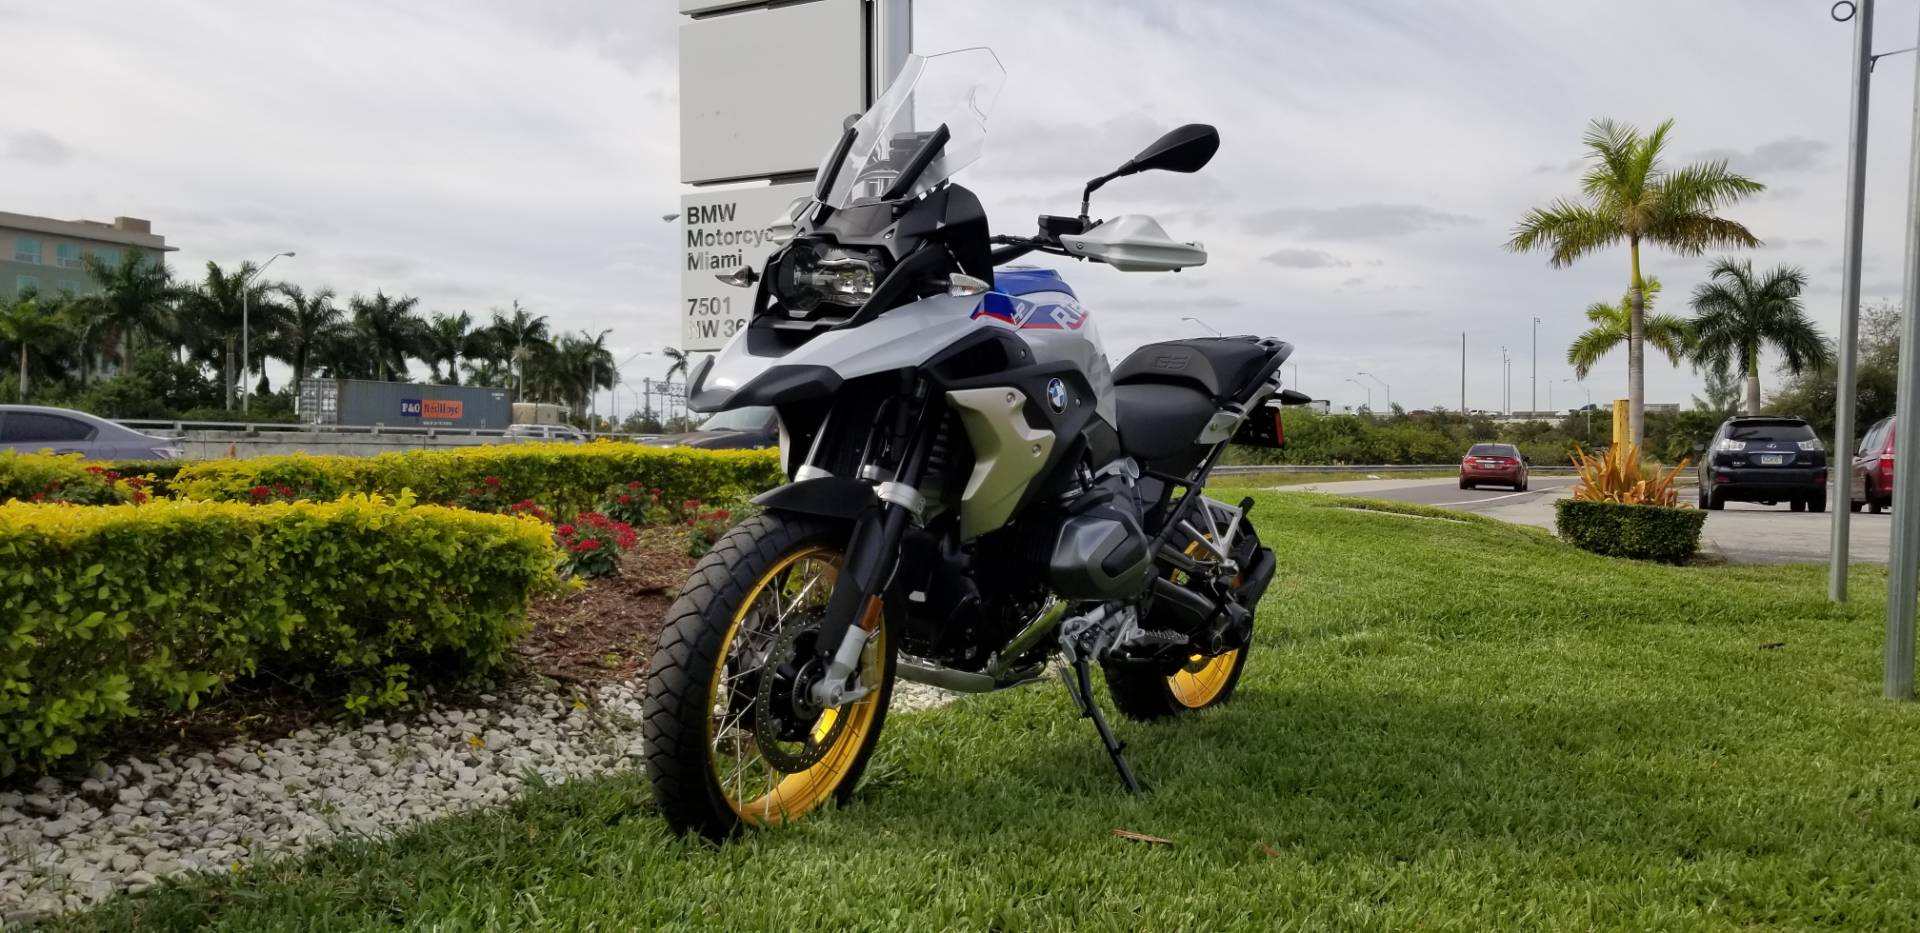 New 2019 BMW R 1250 GS for sale, New BMW for sale R 1250GS, New BMW Motorcycle R1250GS for sale, new BMW 1250GS, R1250GS, GS. BMW Motorcycles of Miami, Motorcycles of Miami, Motorcycles Miami, New Motorcycles, Used Motorcycles, pre-owned. #BMWMotorcyclesOfMiami #MotorcyclesOfMiami. - Photo 2